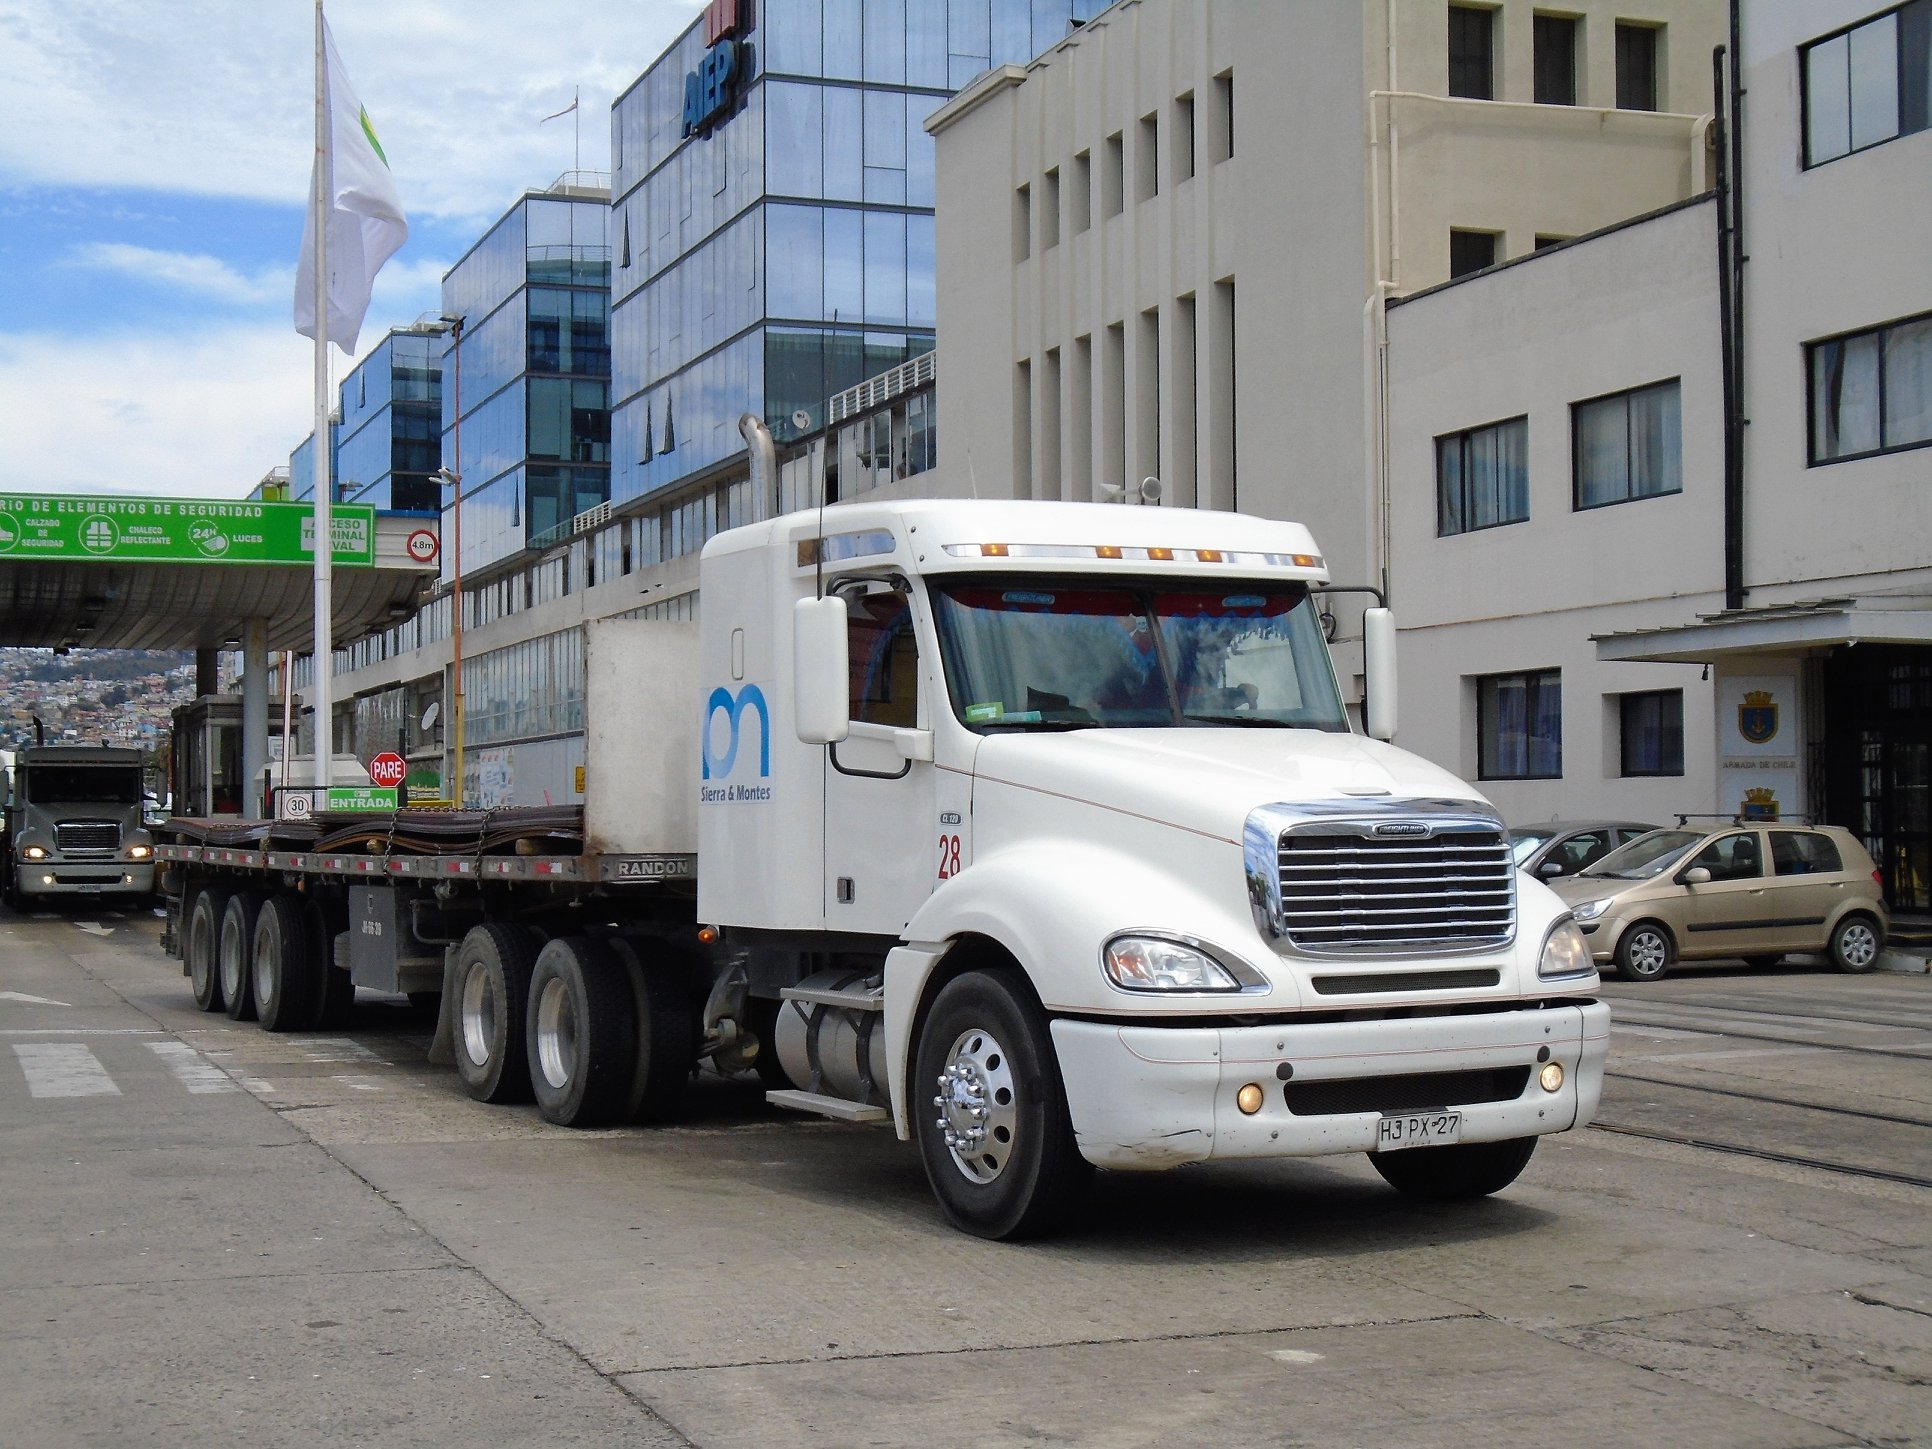 FREIGHTLINER-COLUMBIA-CL-120-ISX-Mid-Roof-6X4-TRACTOR-No-28--2015-t-sierra--montes